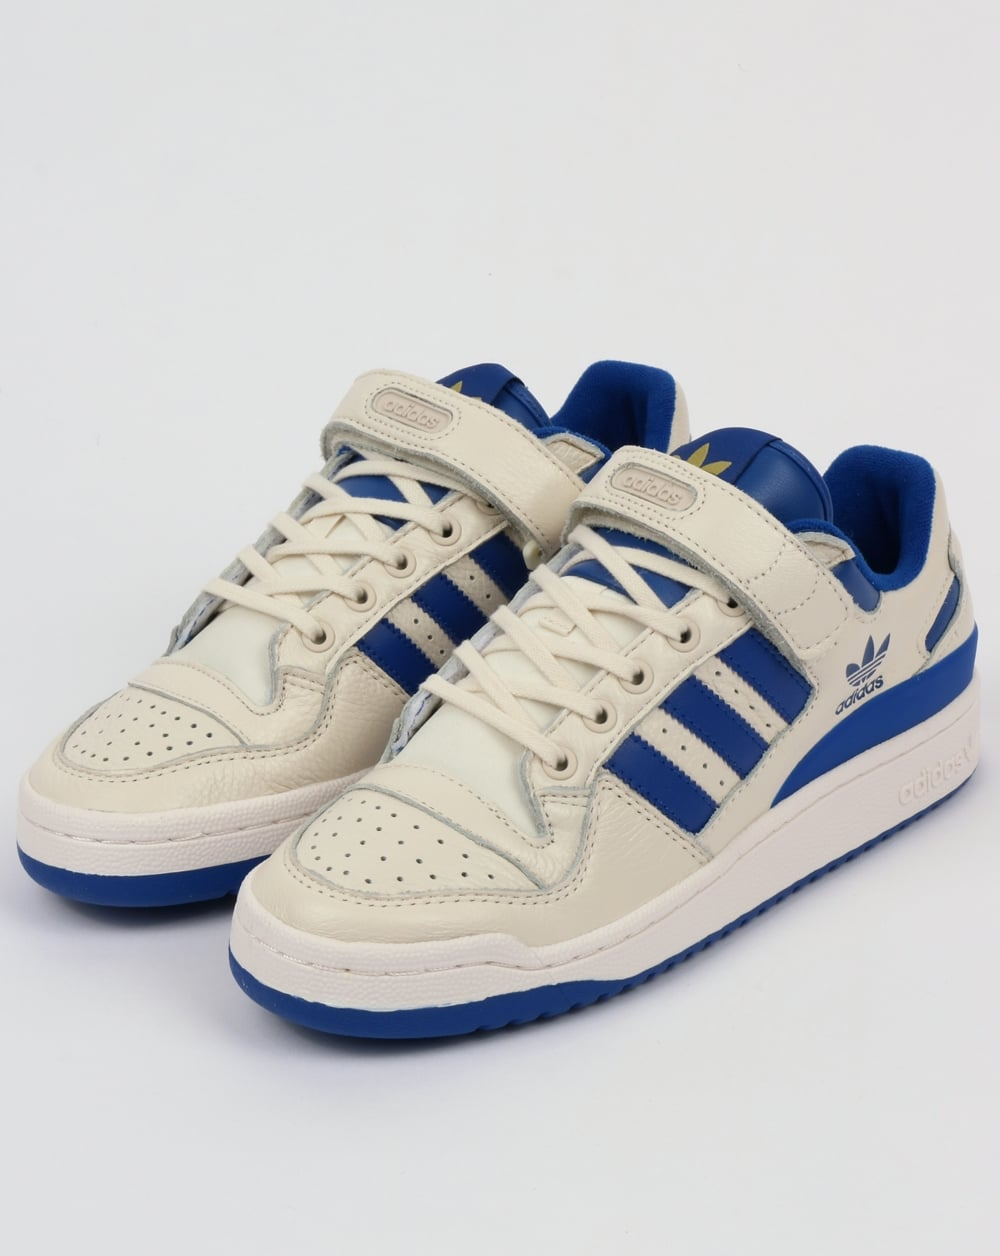 a7436424476fc Adidas Forum Lo Trainers White Royal